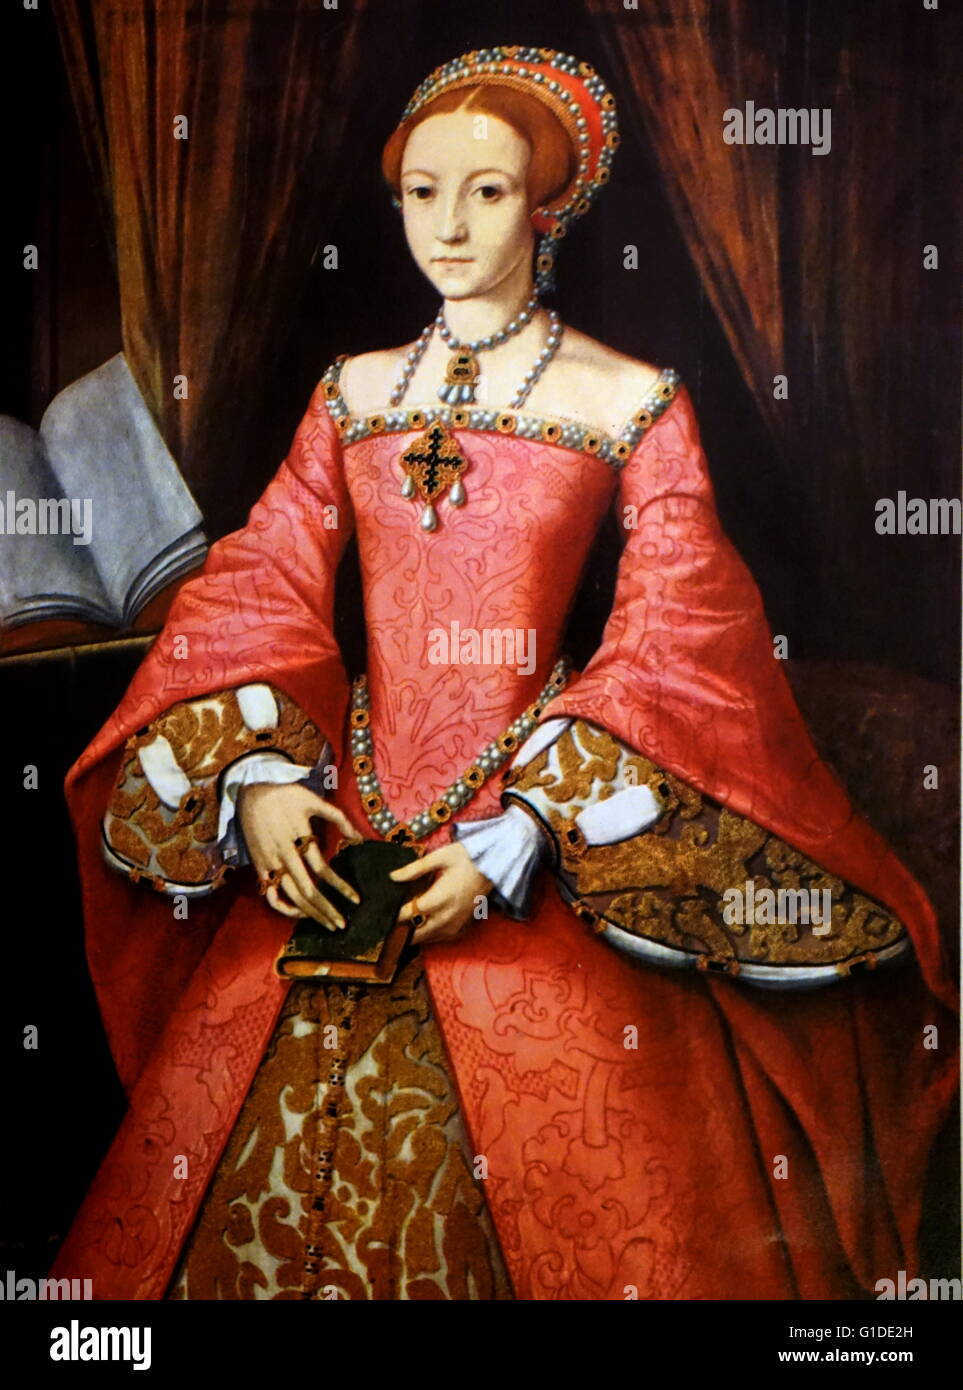 the queen of england elizabeth i Queen elizabeth ii was born princess elizabeth alexandra mary on april 21, 1926, in london, england at the time of her birth, most did not realize elizabeth would someday become queen of great.